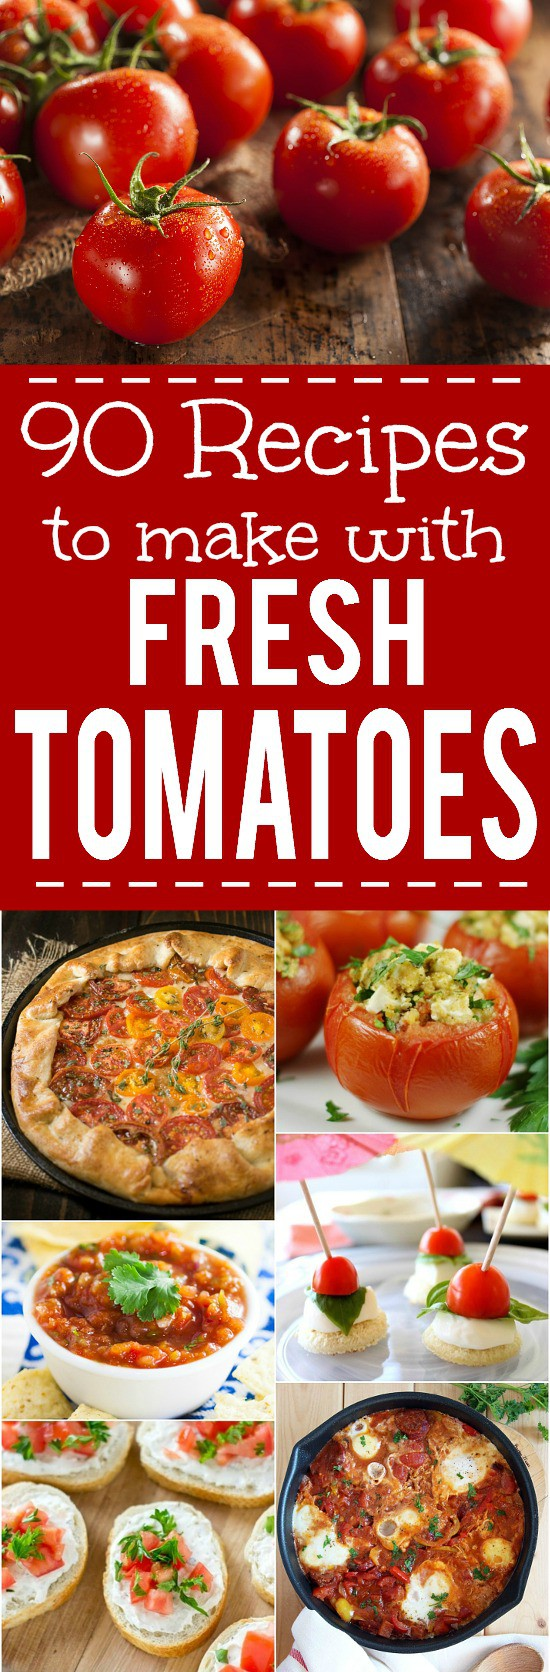 88 Recipes with Fresh Tomatoes - Use up your fresh, juicy tomato harvest this Summer with these 88 of the absolute BEST Recipes with Fresh Tomatoes that are sure to have you celebrating your garden, from cherry or grape tomatoes, to beefsteak or heirloom tomatoes!